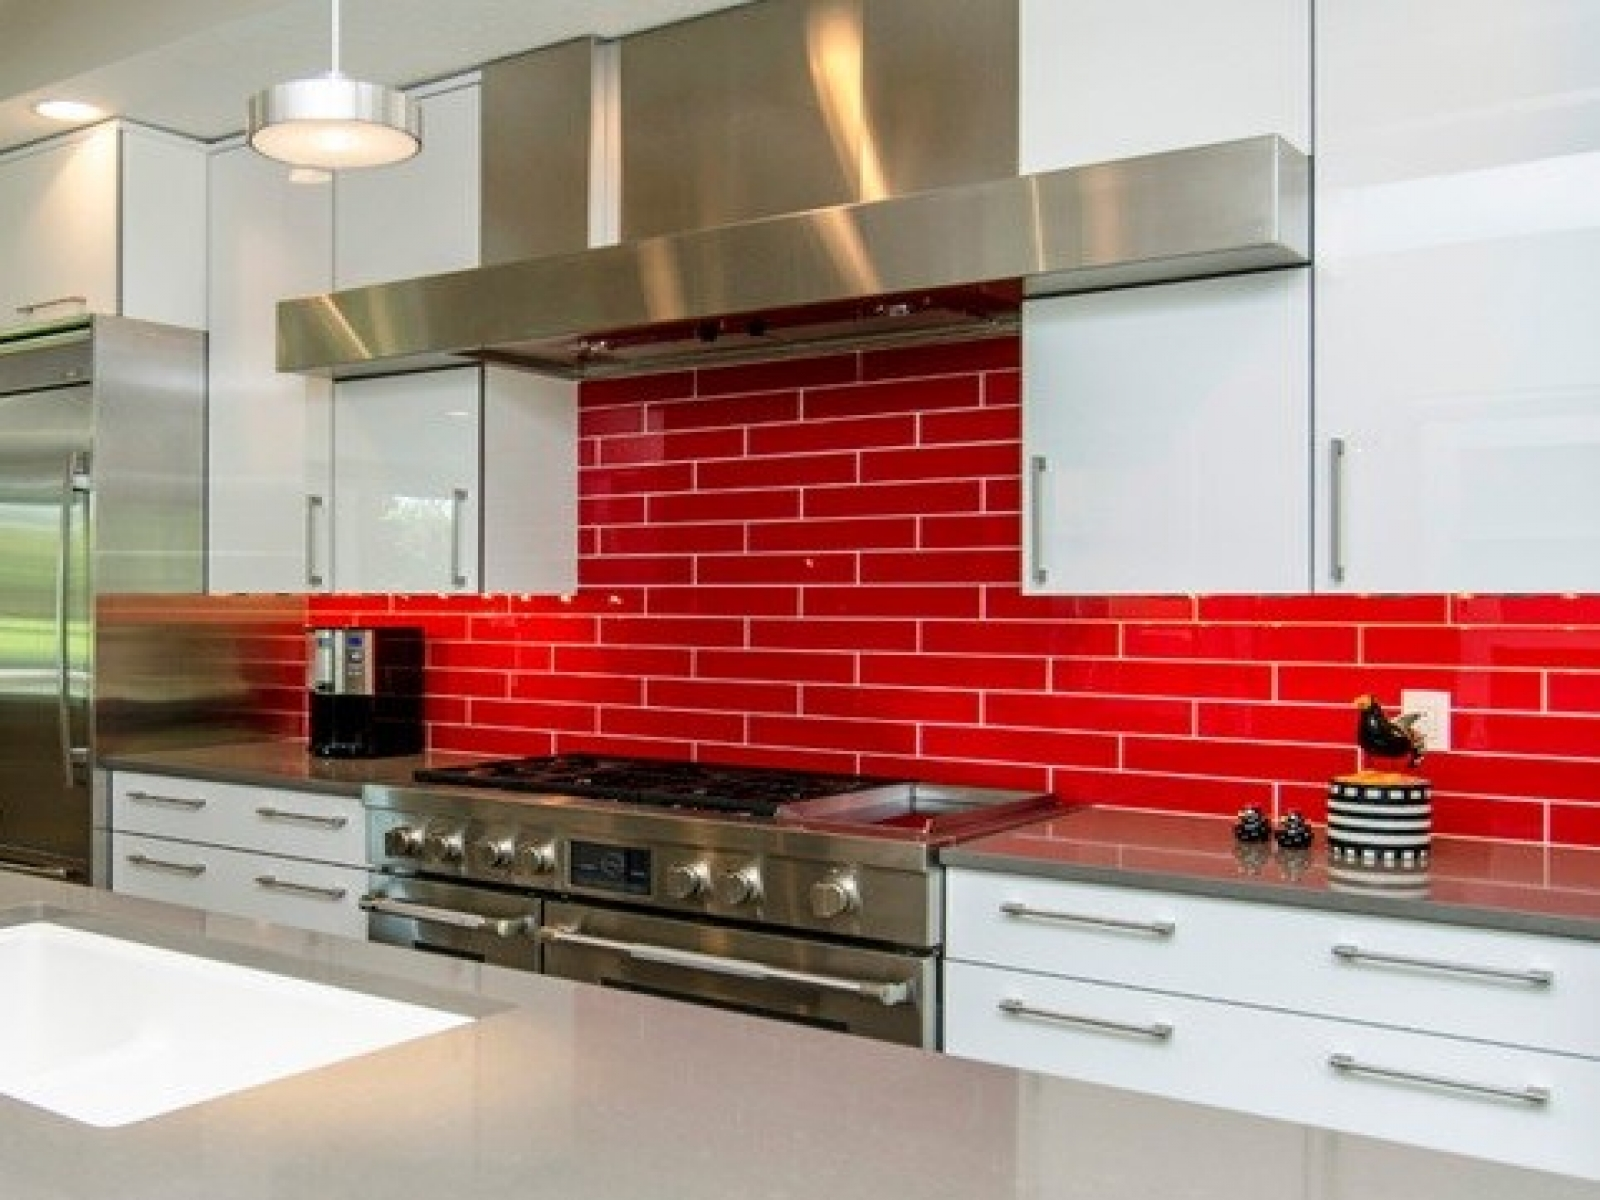 White Kitchen Cabinets Red Backsplash